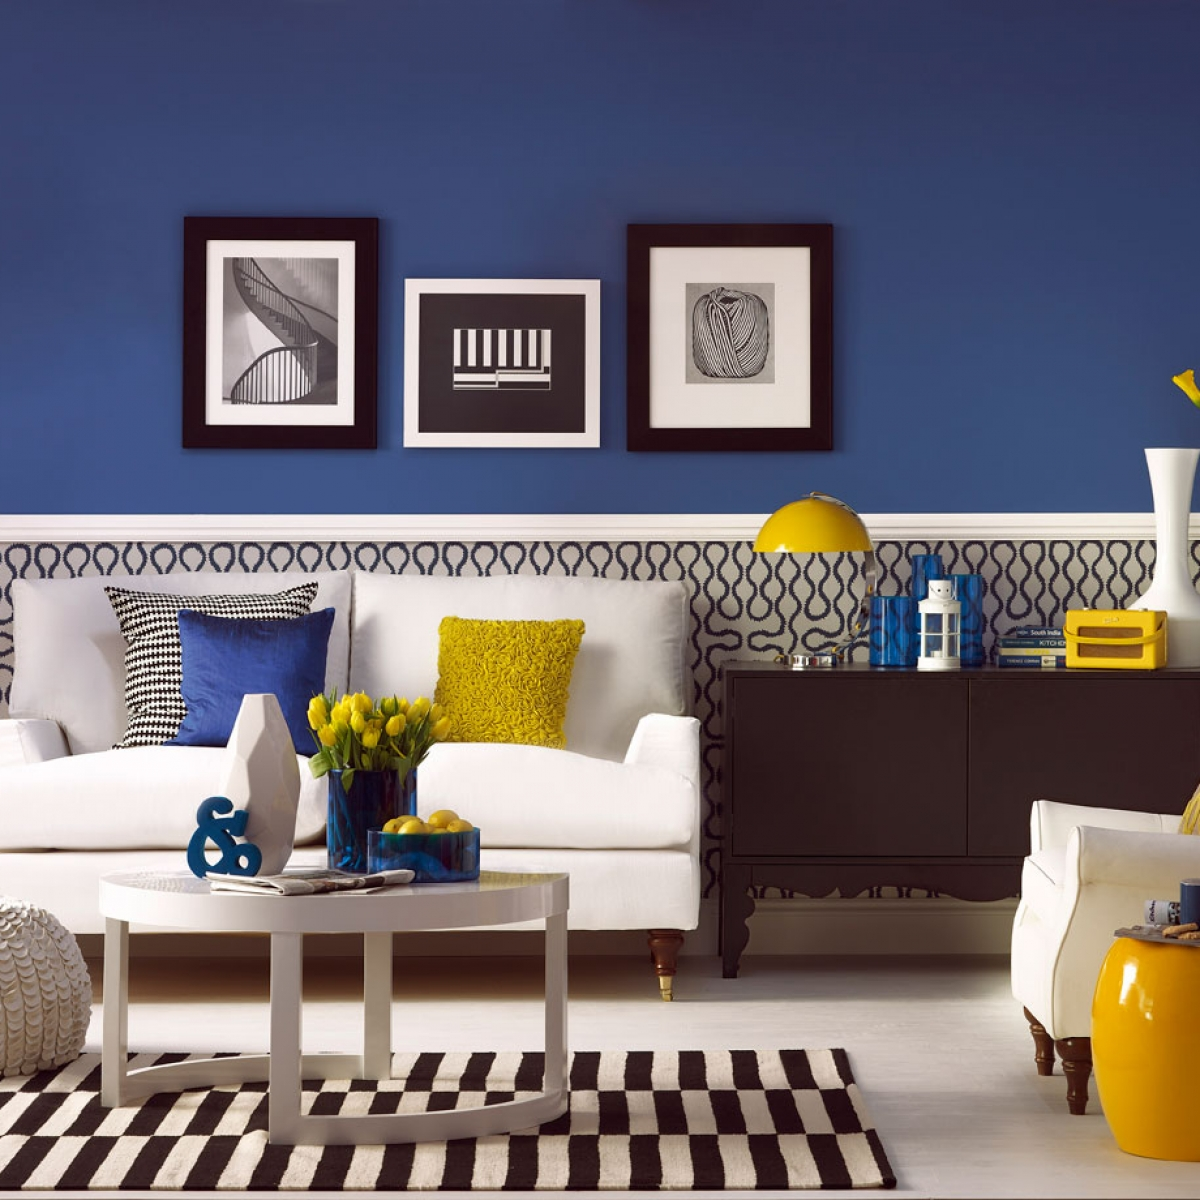 Bright Room: How To Decorate With Bold Colour